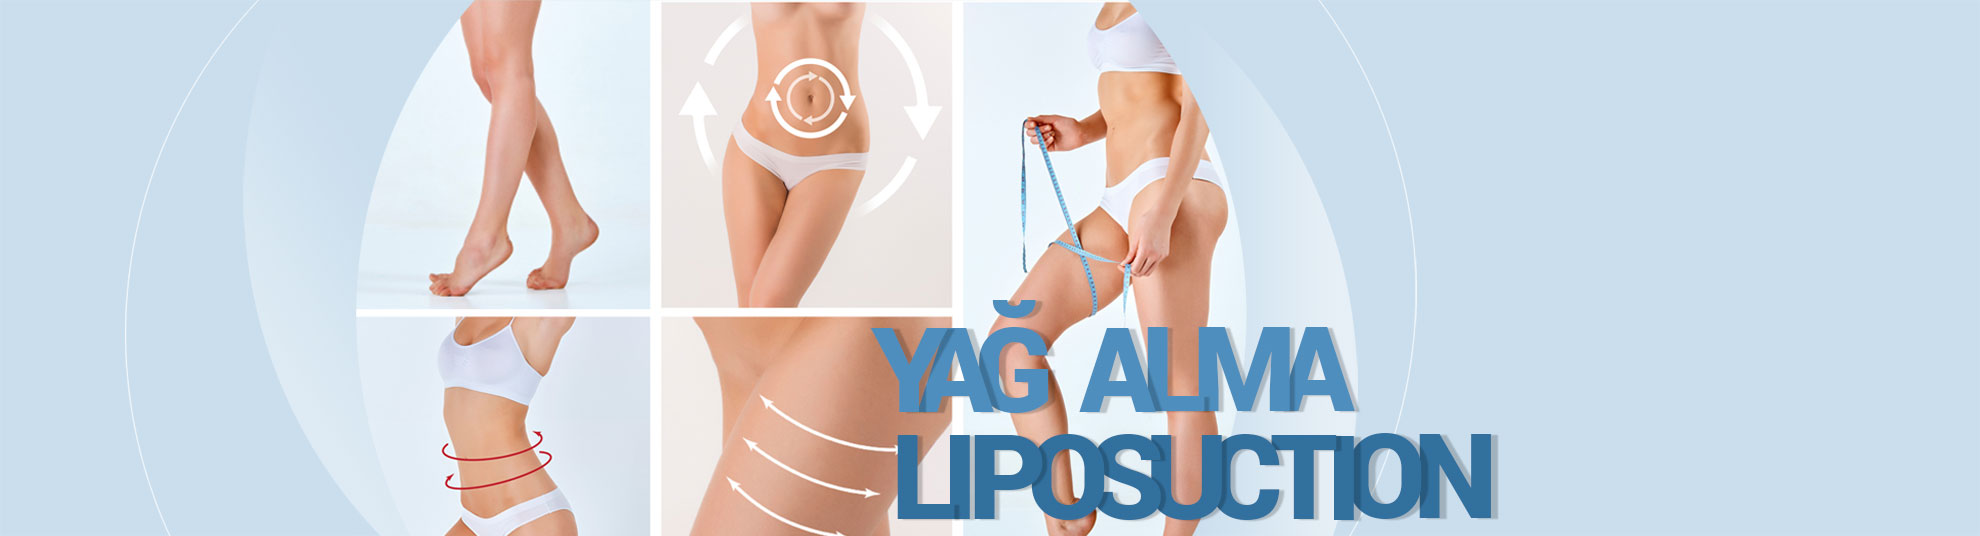 liposuction-yag-alma